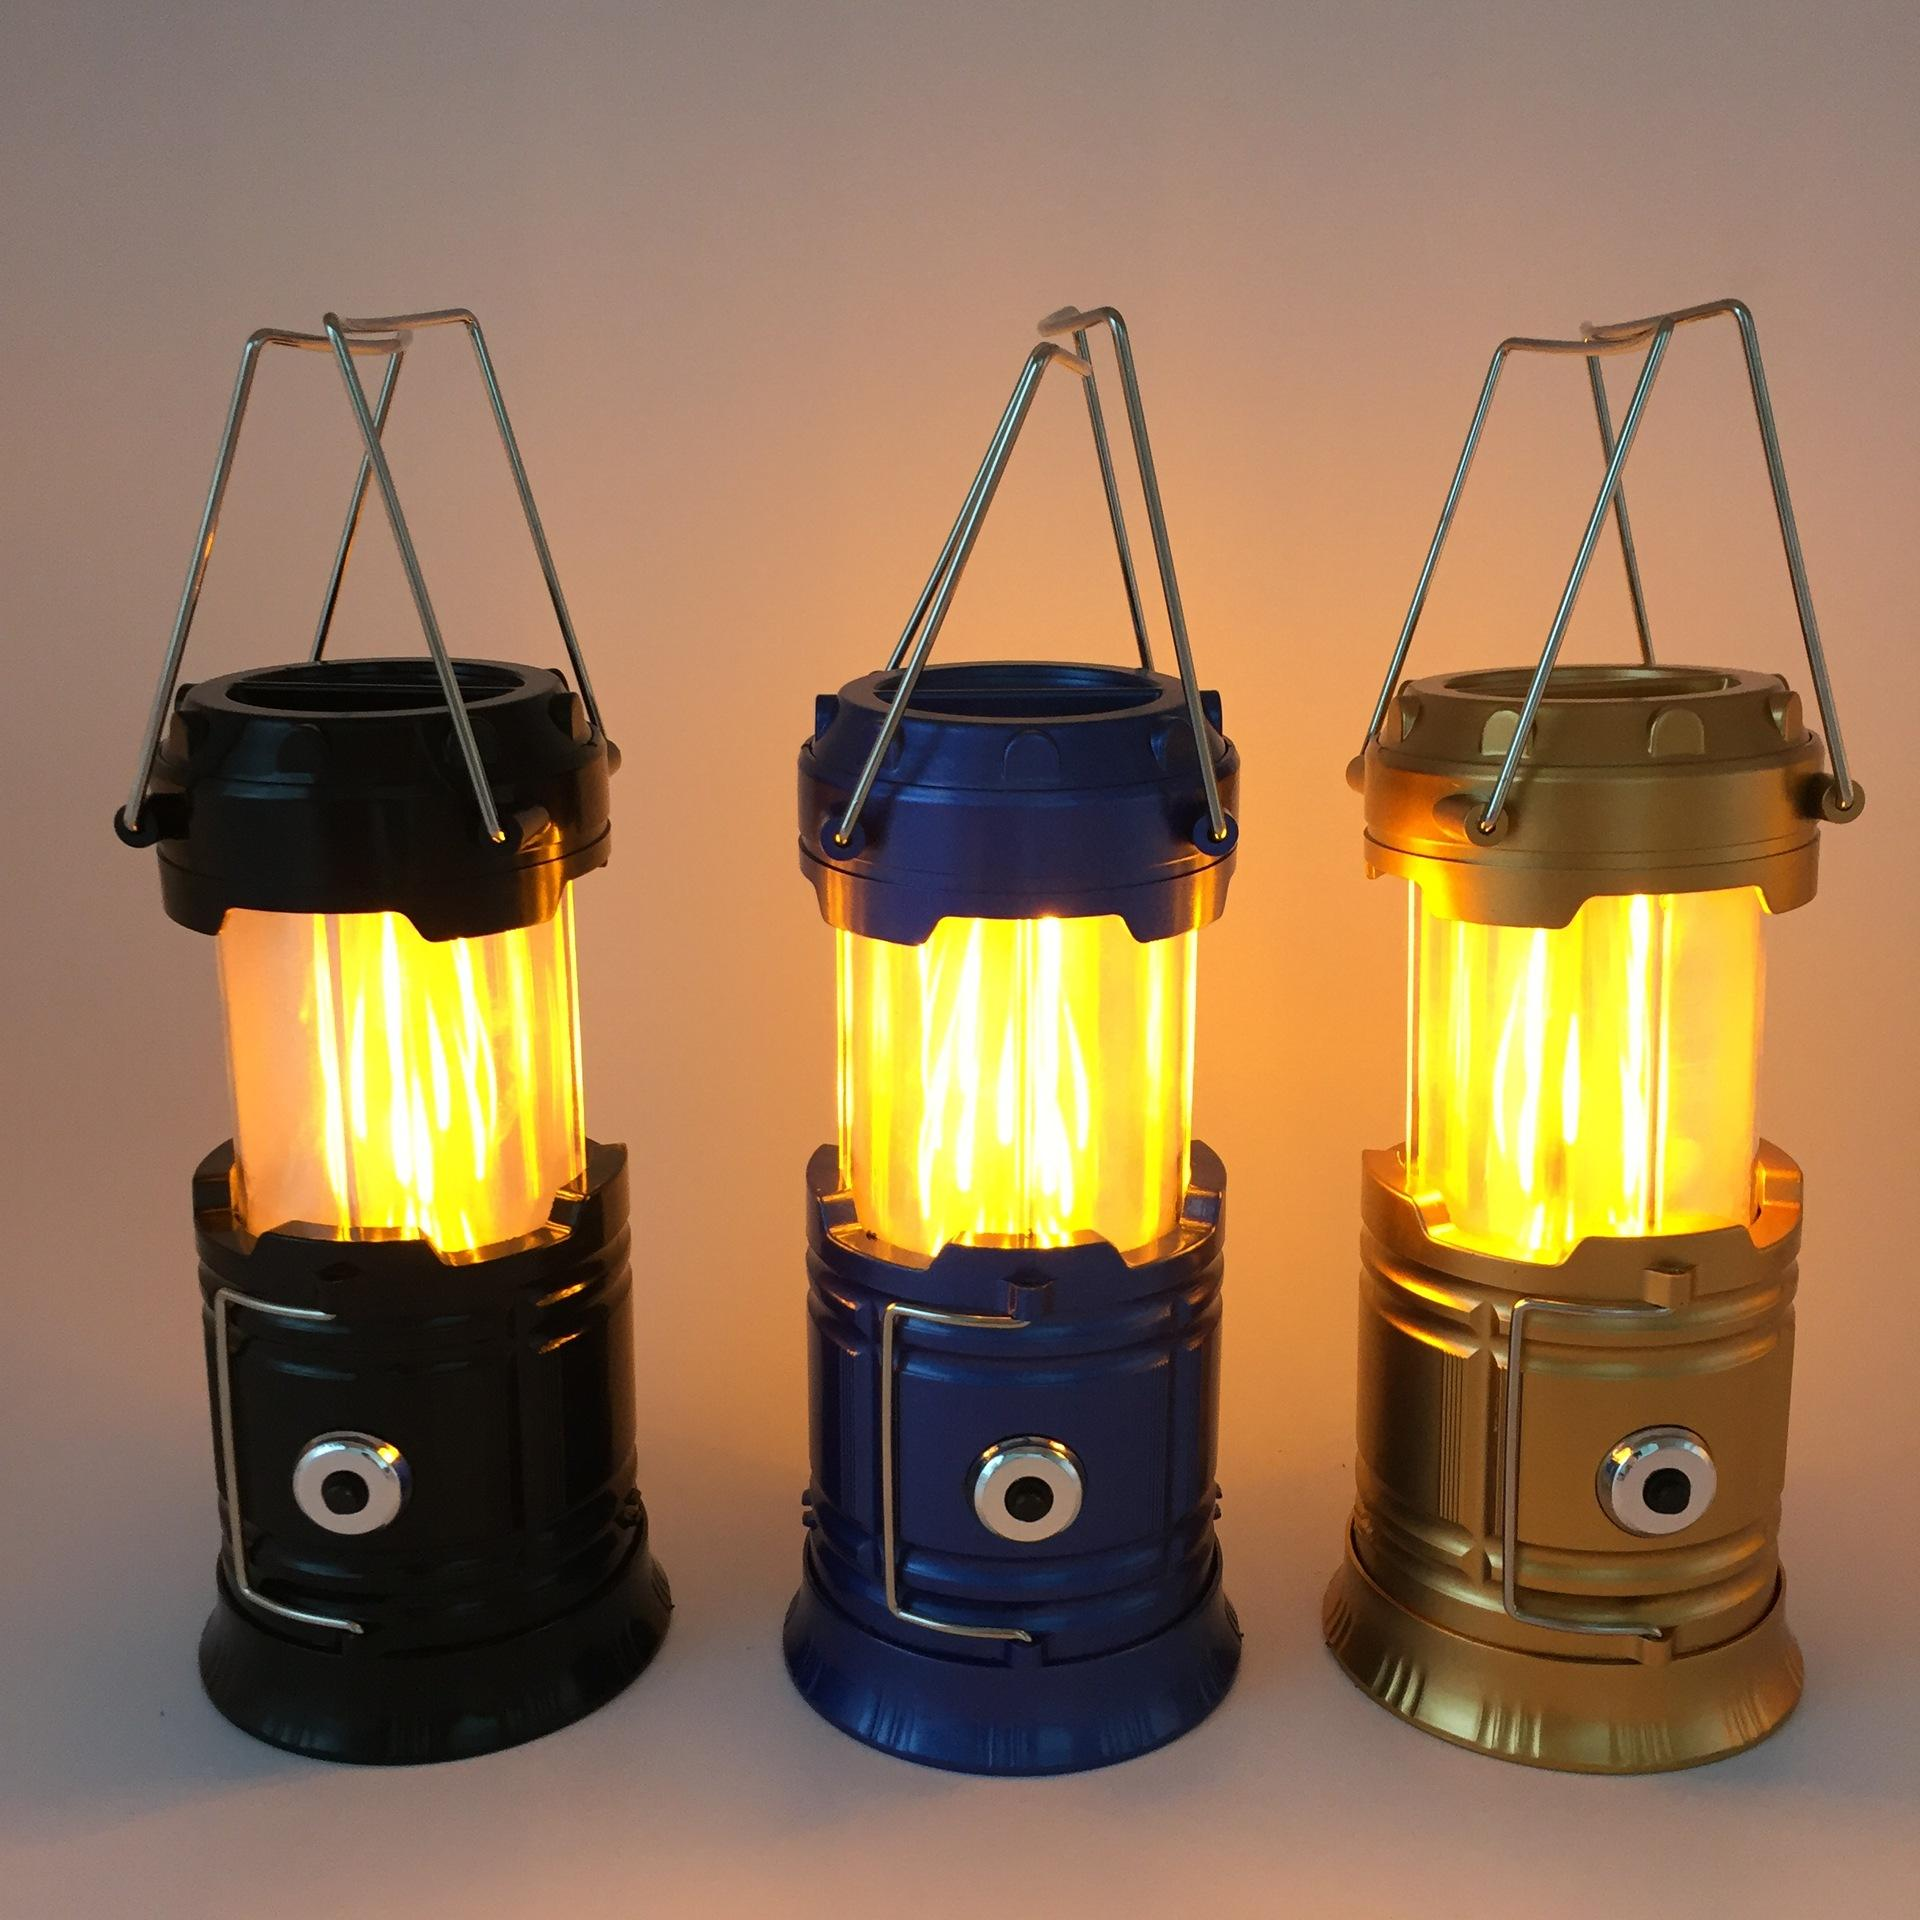 Portable 3 LED Outdoor Camping Battery Operated Lantern Tent Lamp Night Light UK